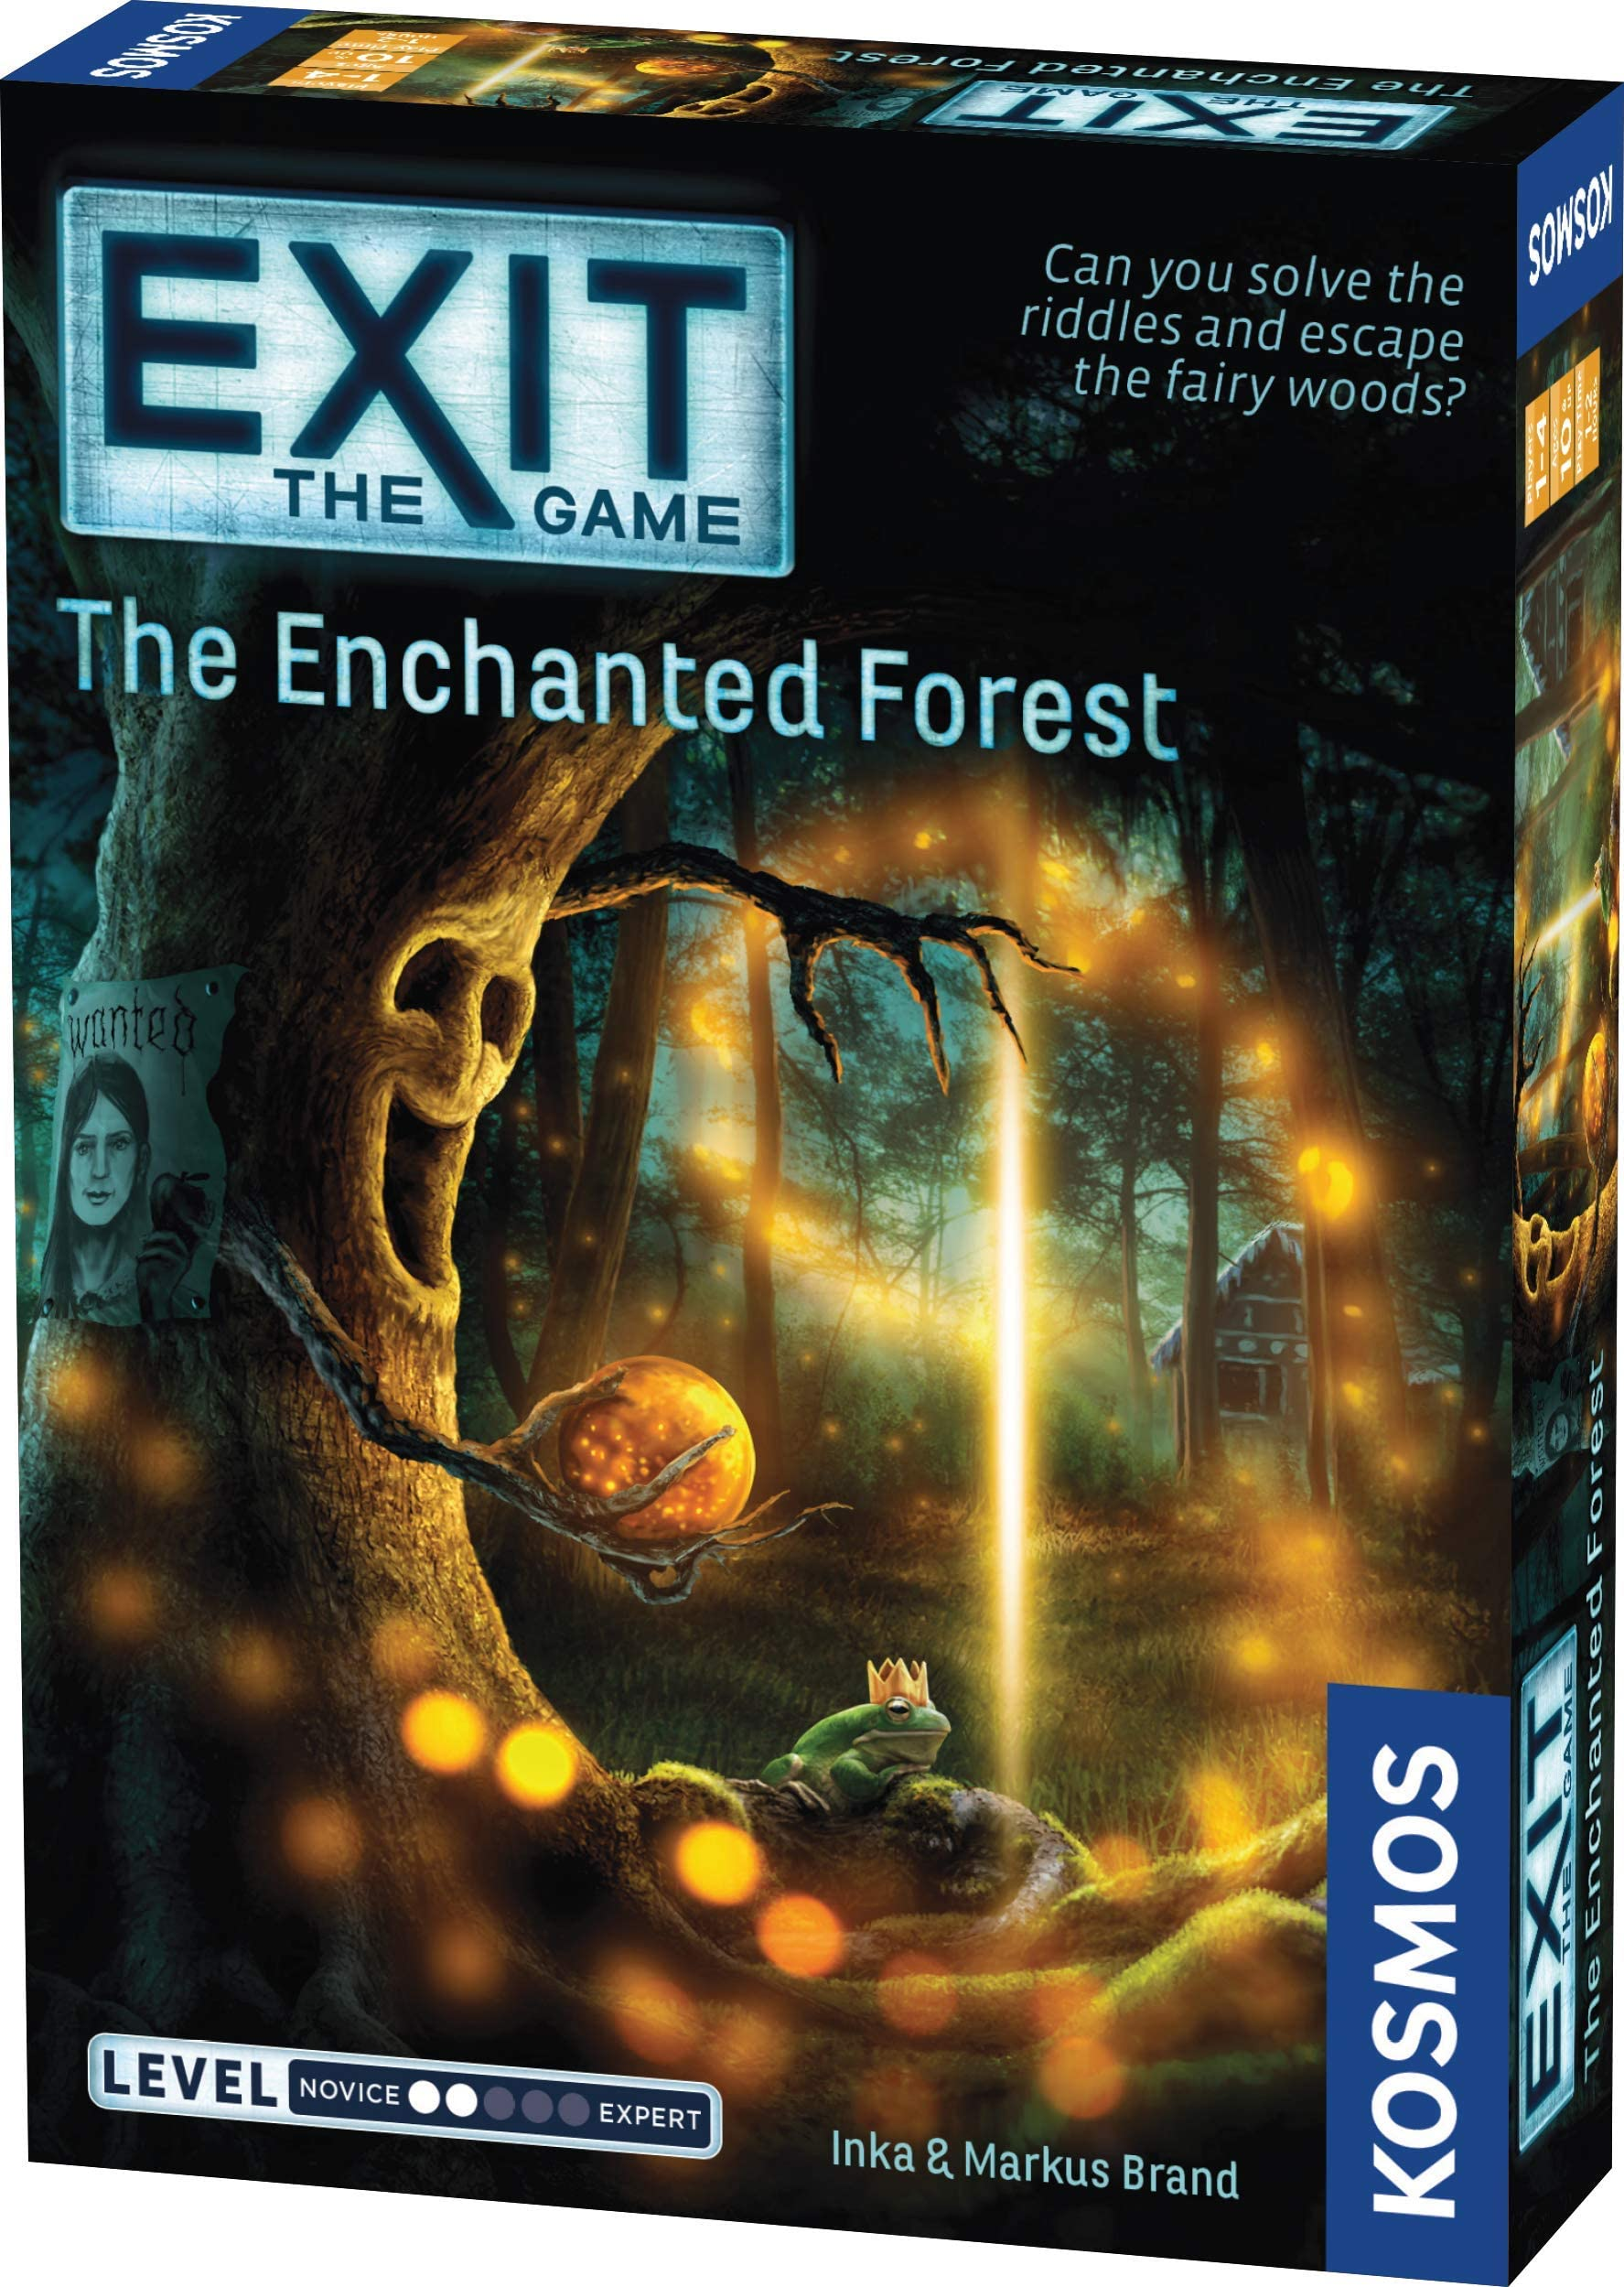 Thames & Kosmos EXIT: The Enchanted Forest| Escape Room Game in a Box| EXIT: The Game | A Kosmos Game | Family Friendly, Card-Based at-Home Escape Room Experience for 1 to 4 Players, Ages 12+